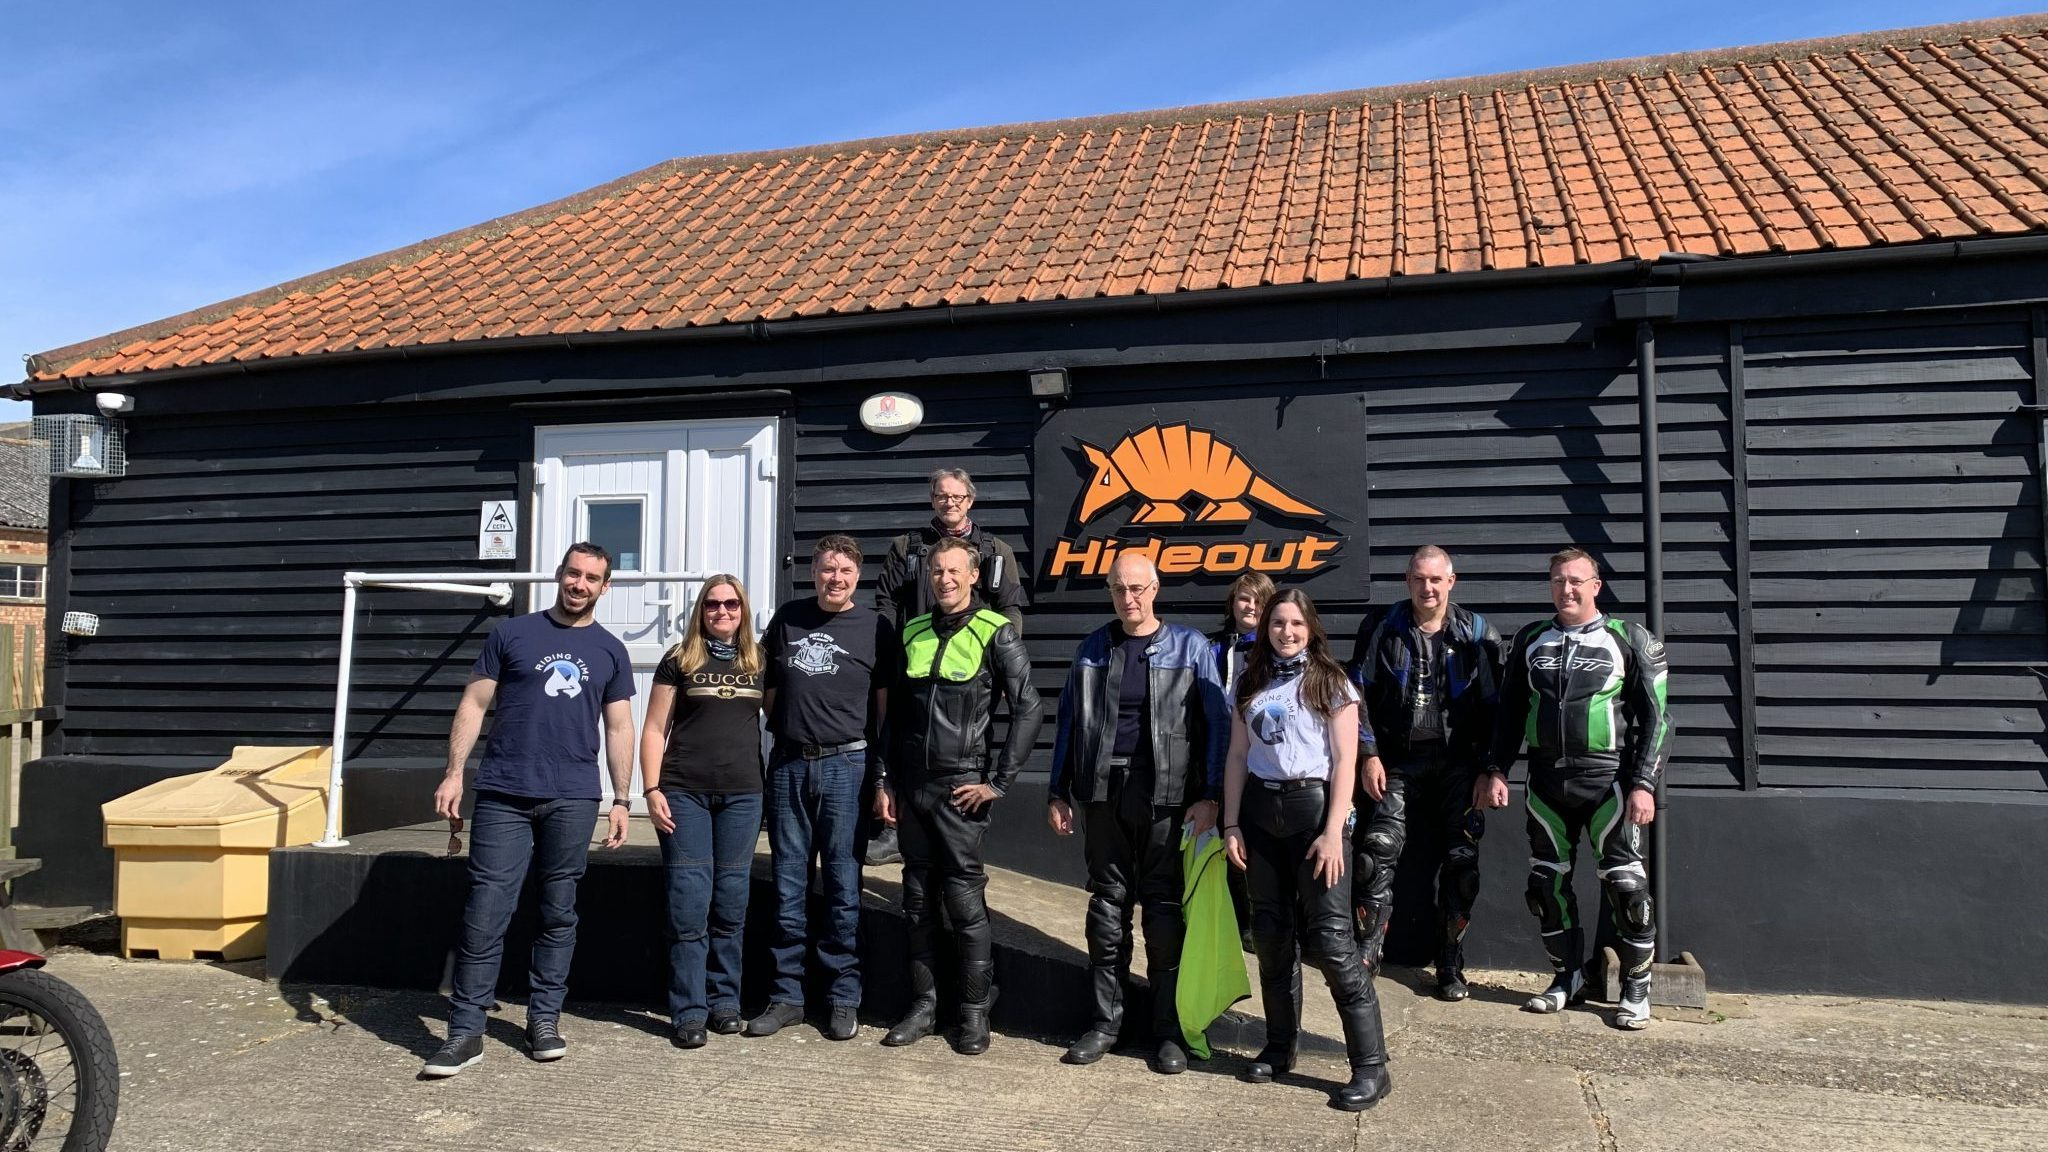 Hideout Ride group photo